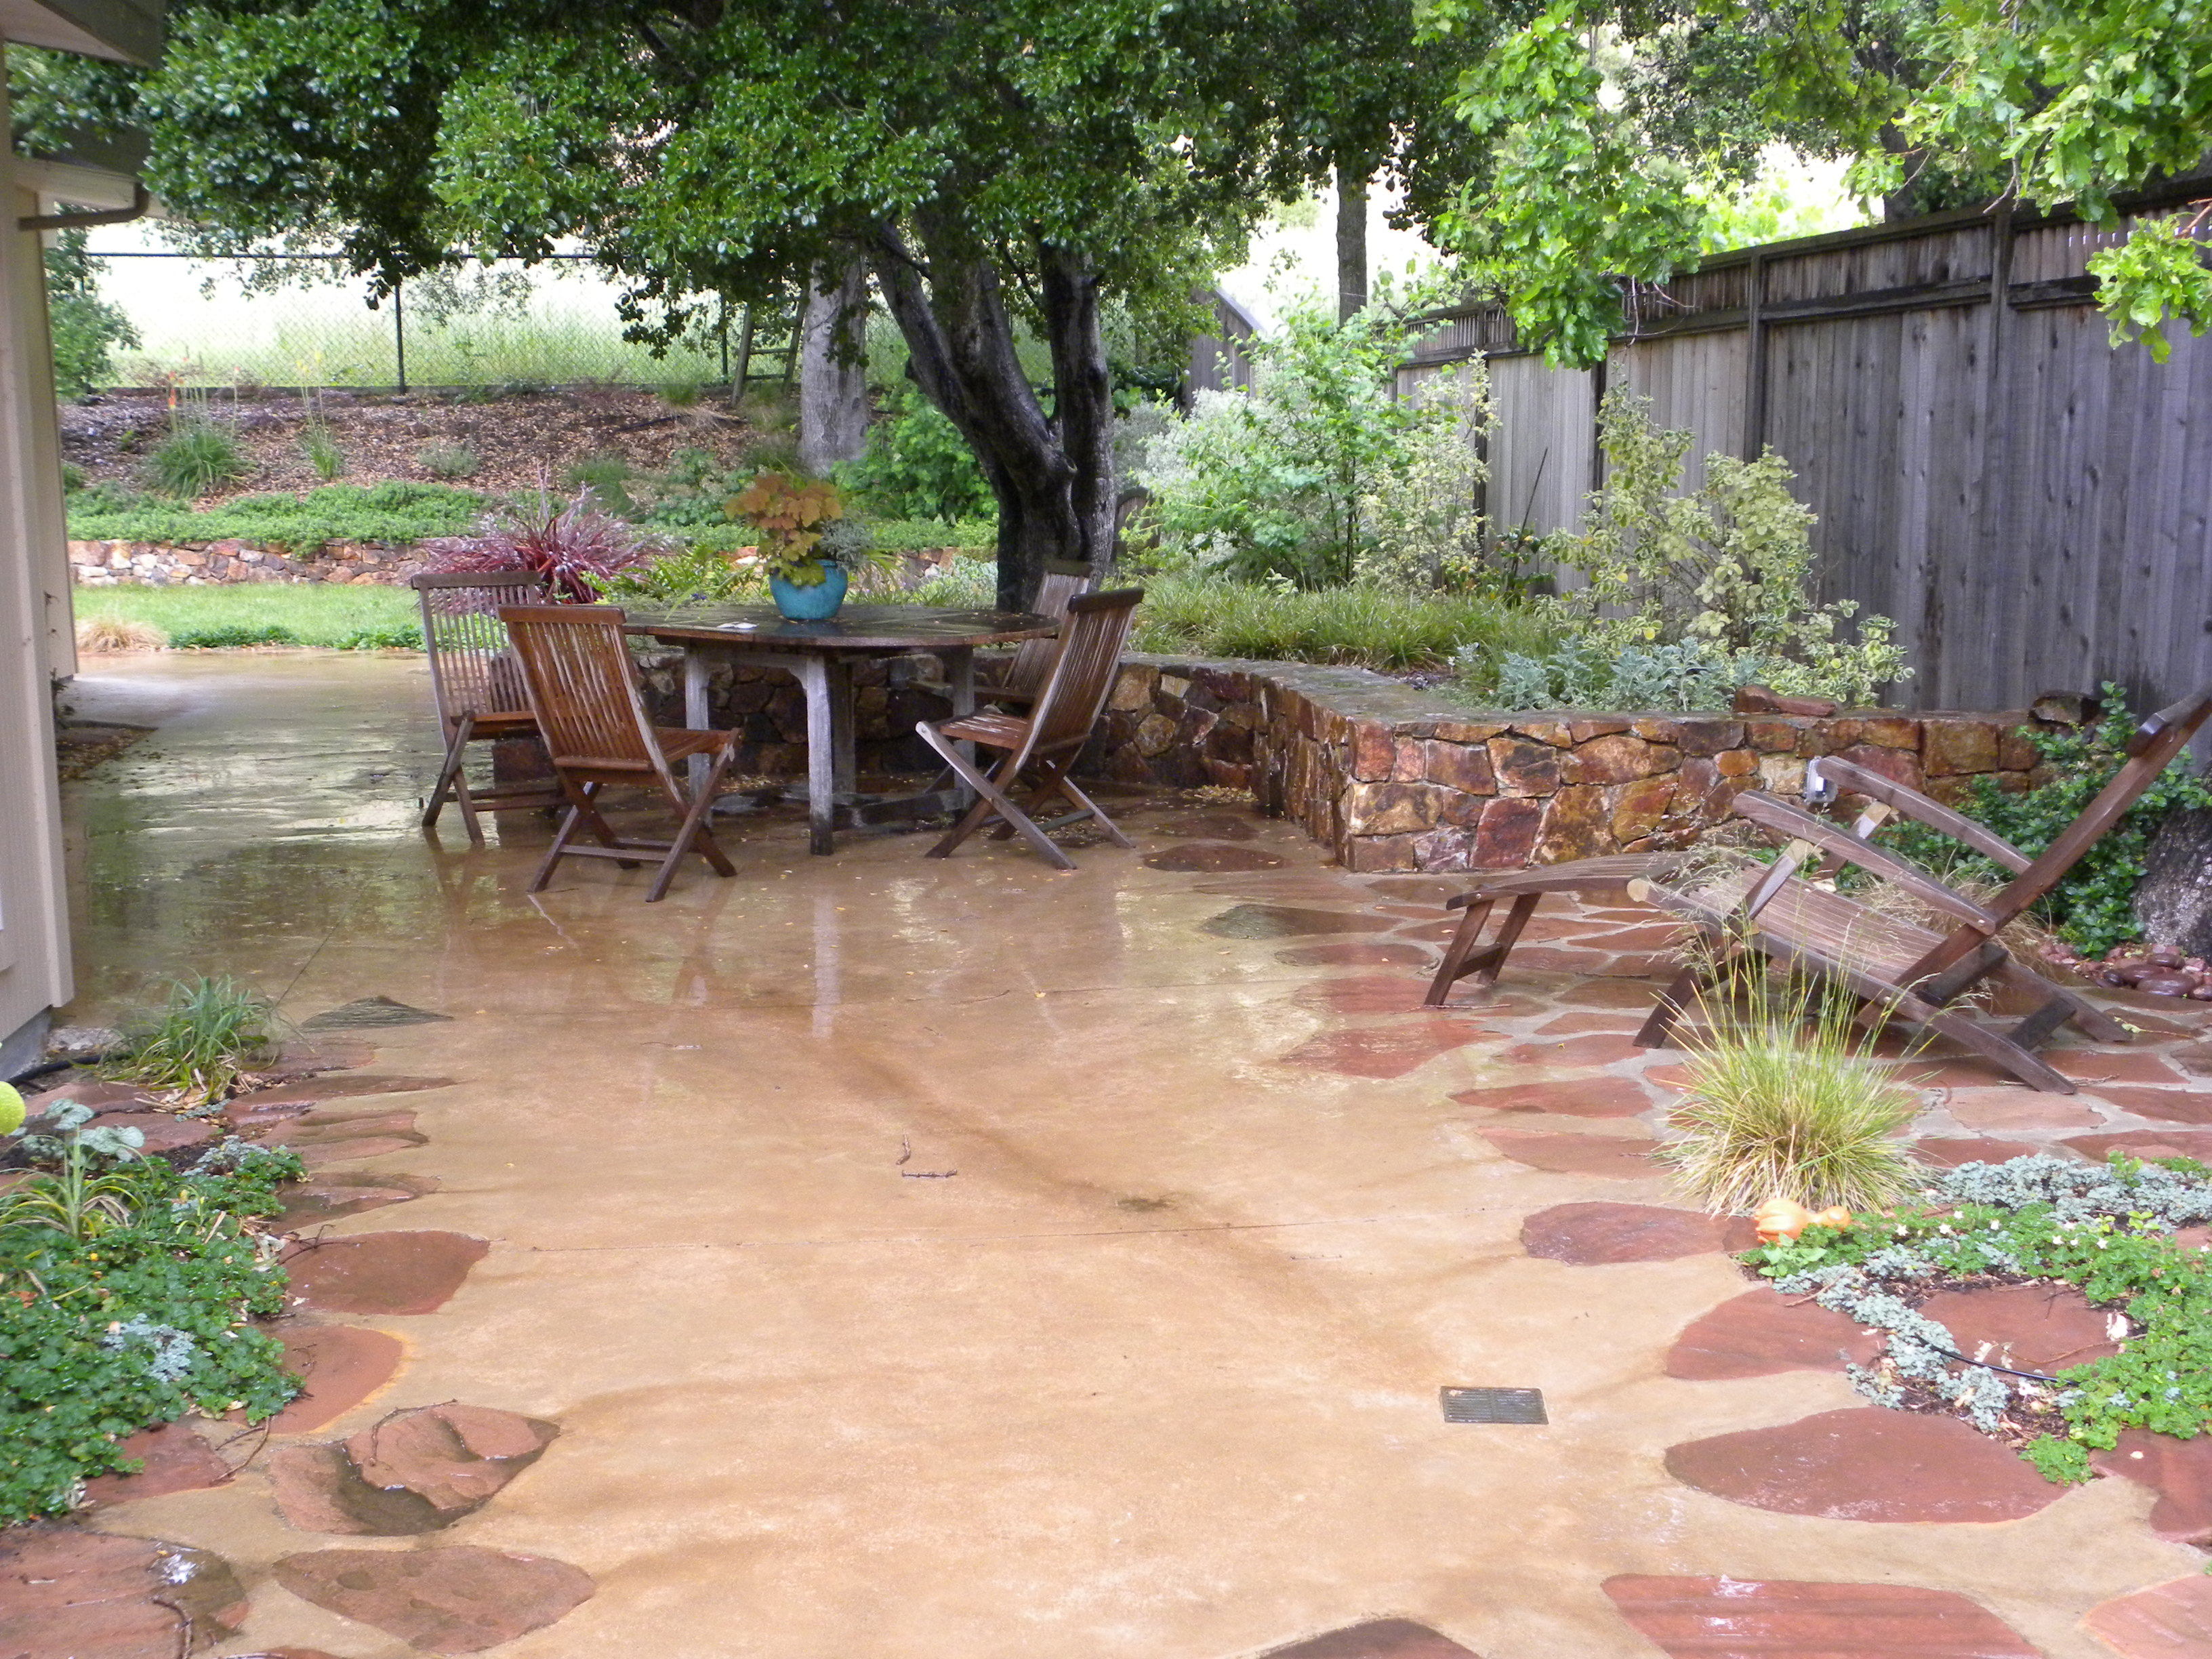 concrete patio ideas | the human footprint - Ideas For A Concrete Patio